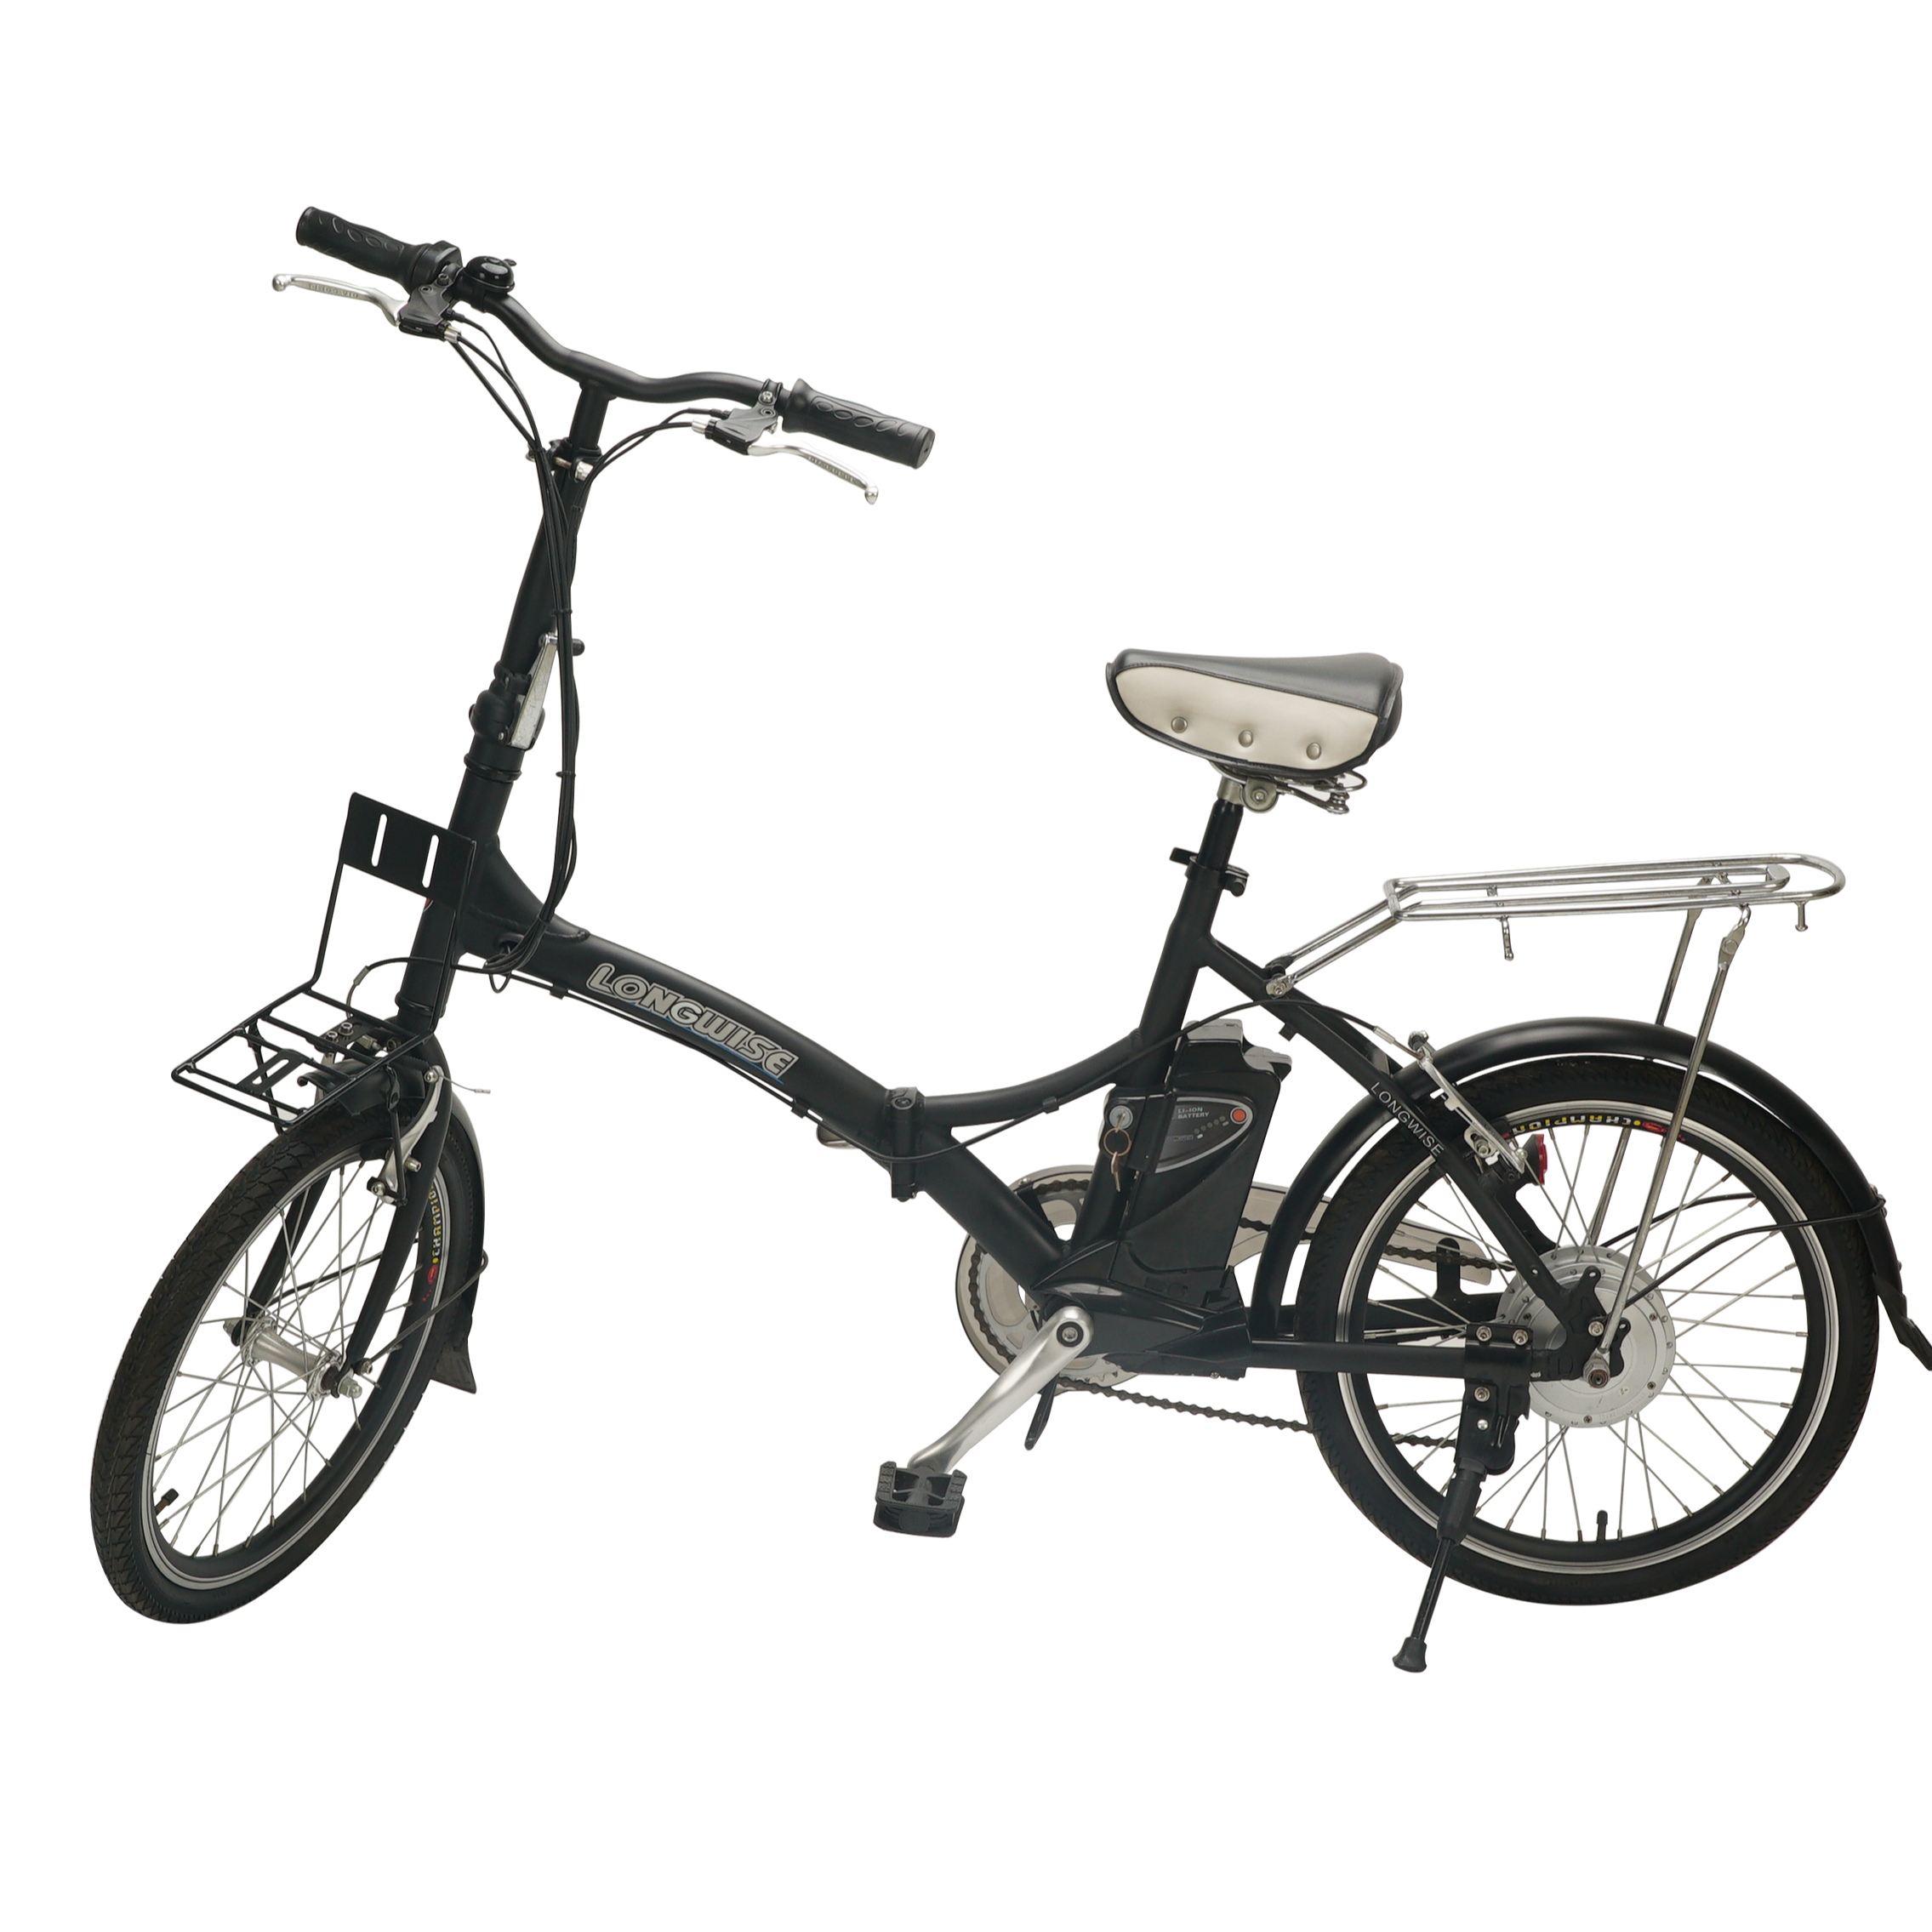 Electric 24v 250w city foldable folding bike long range electric bicycle manufacturer 6AH 8AH 20inch PAS e-bike